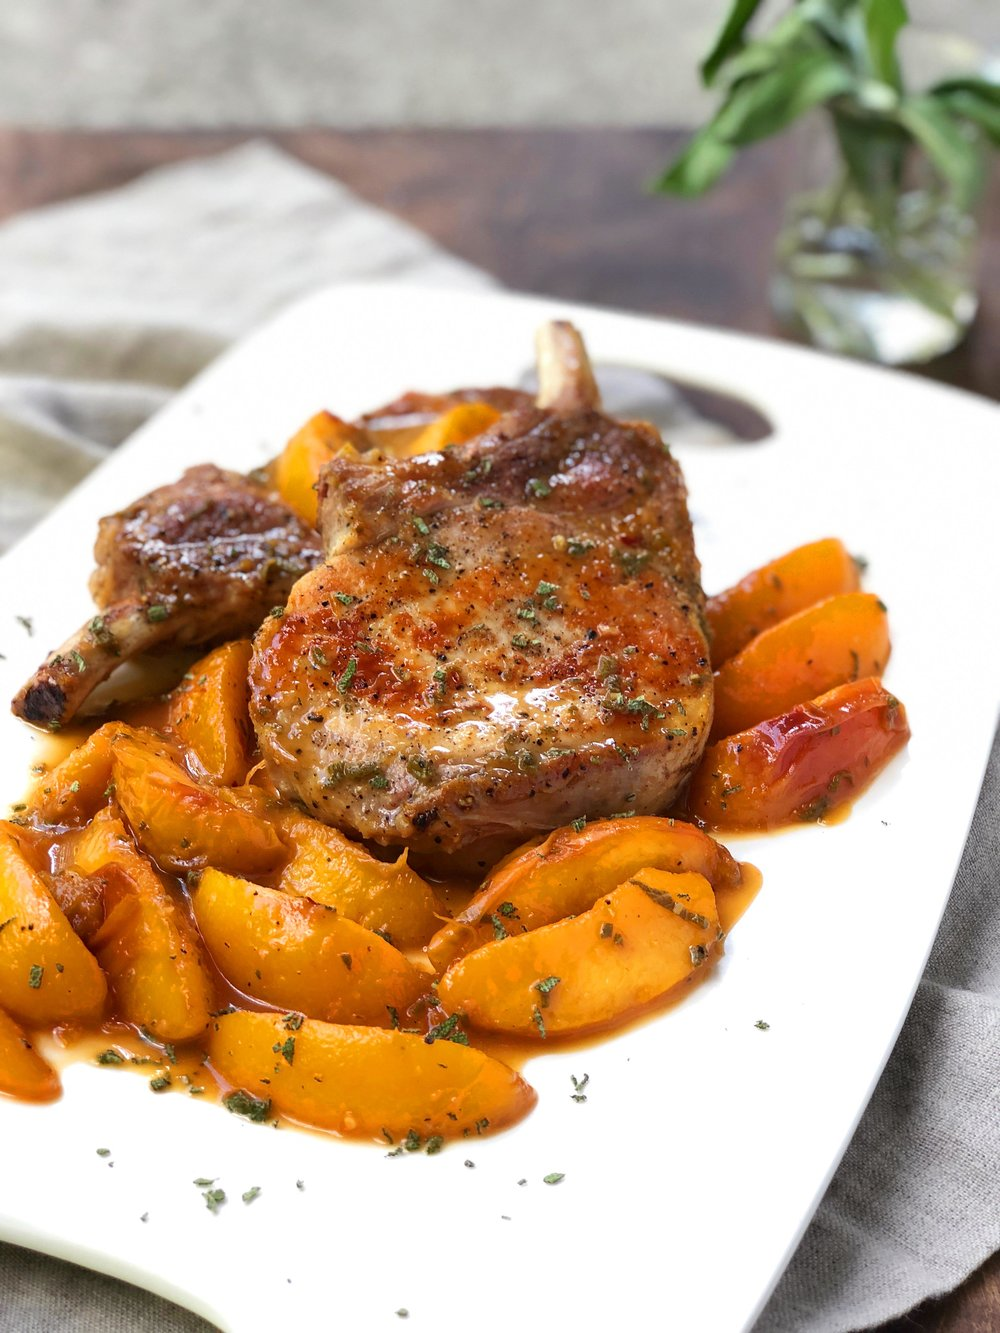 date-night-peach-glazed-pork-chops50.jpg